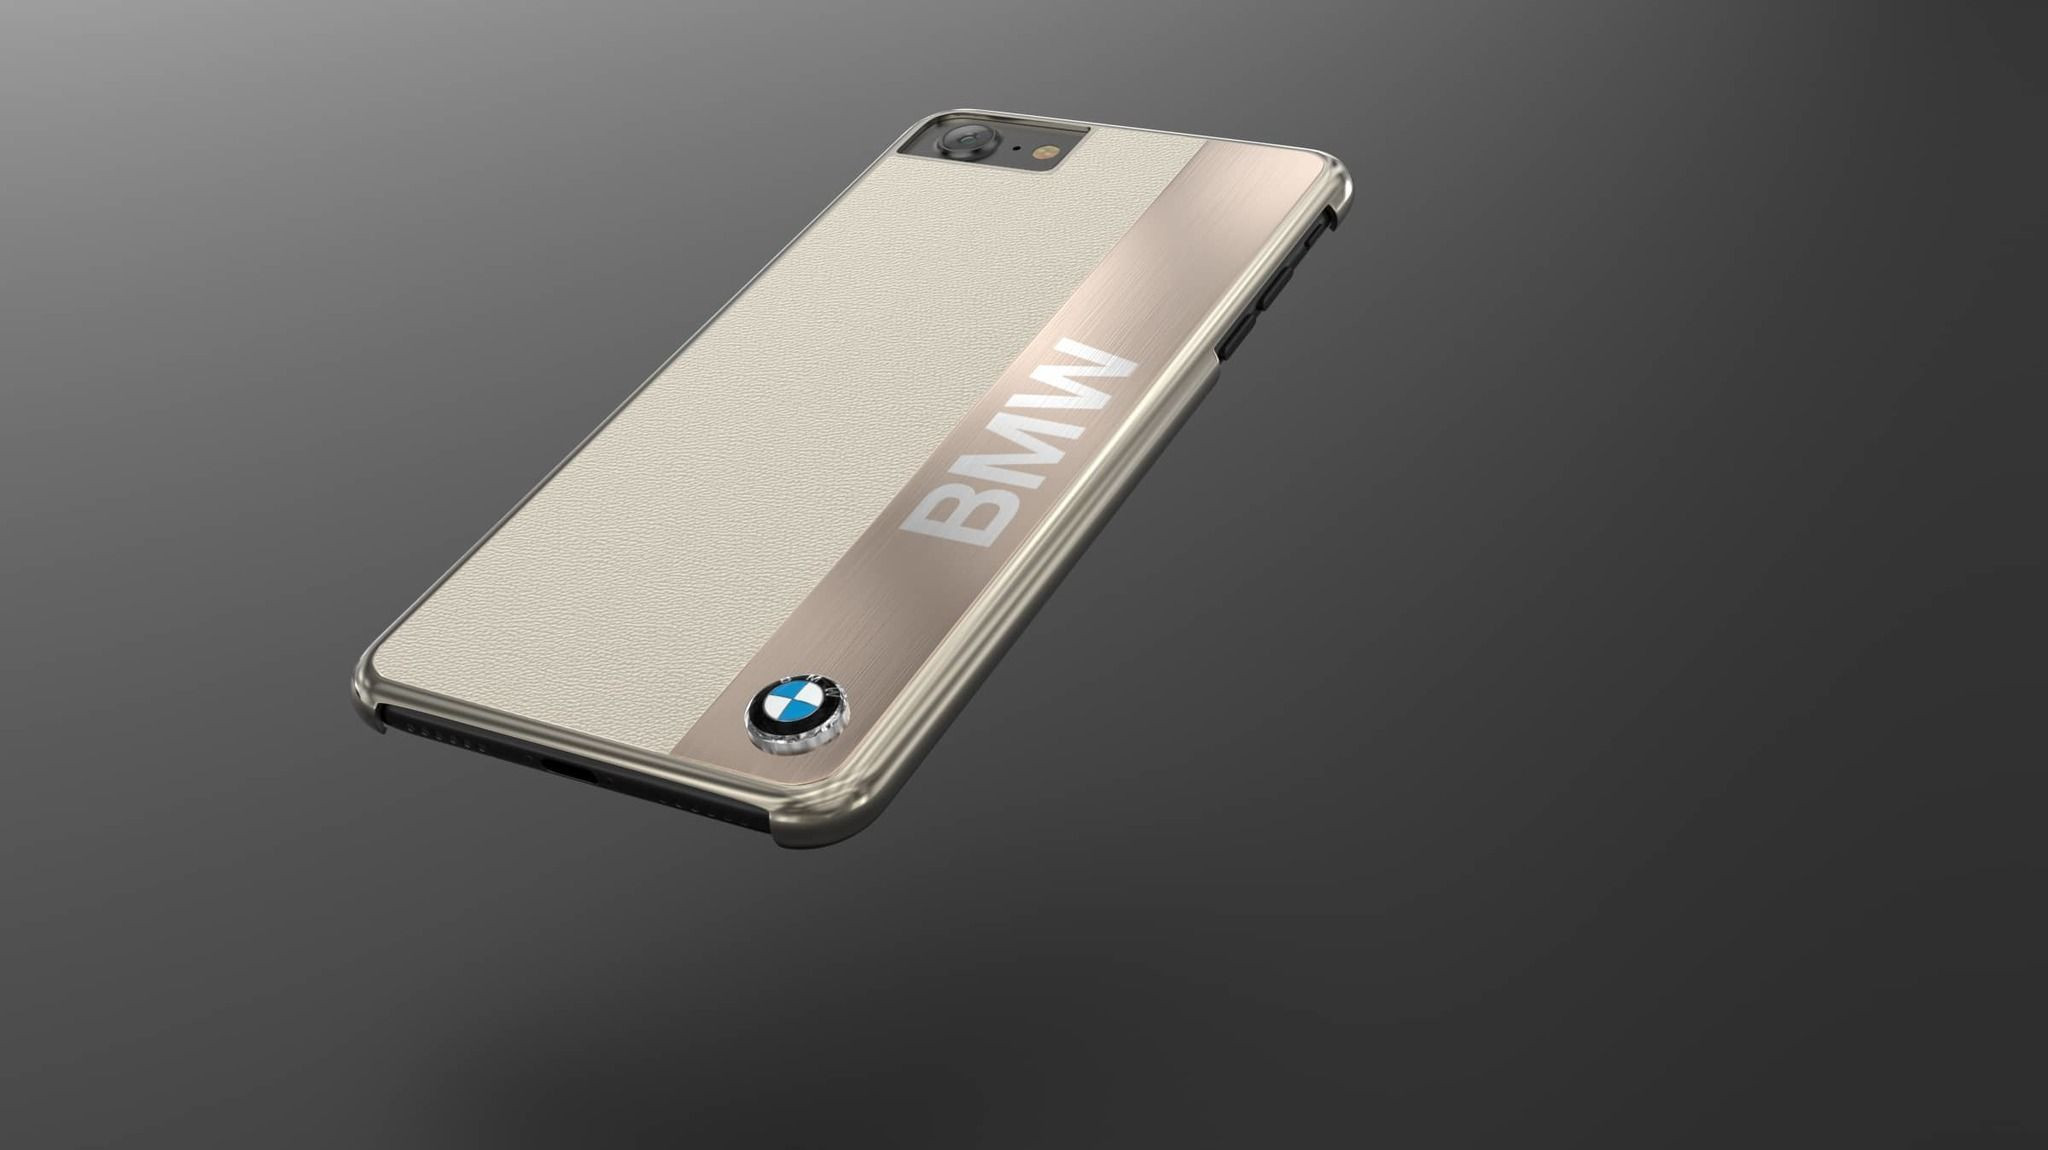 Top Quality Gradient Case for iPhone 6 6s 4.7' / 6 Plus 6s